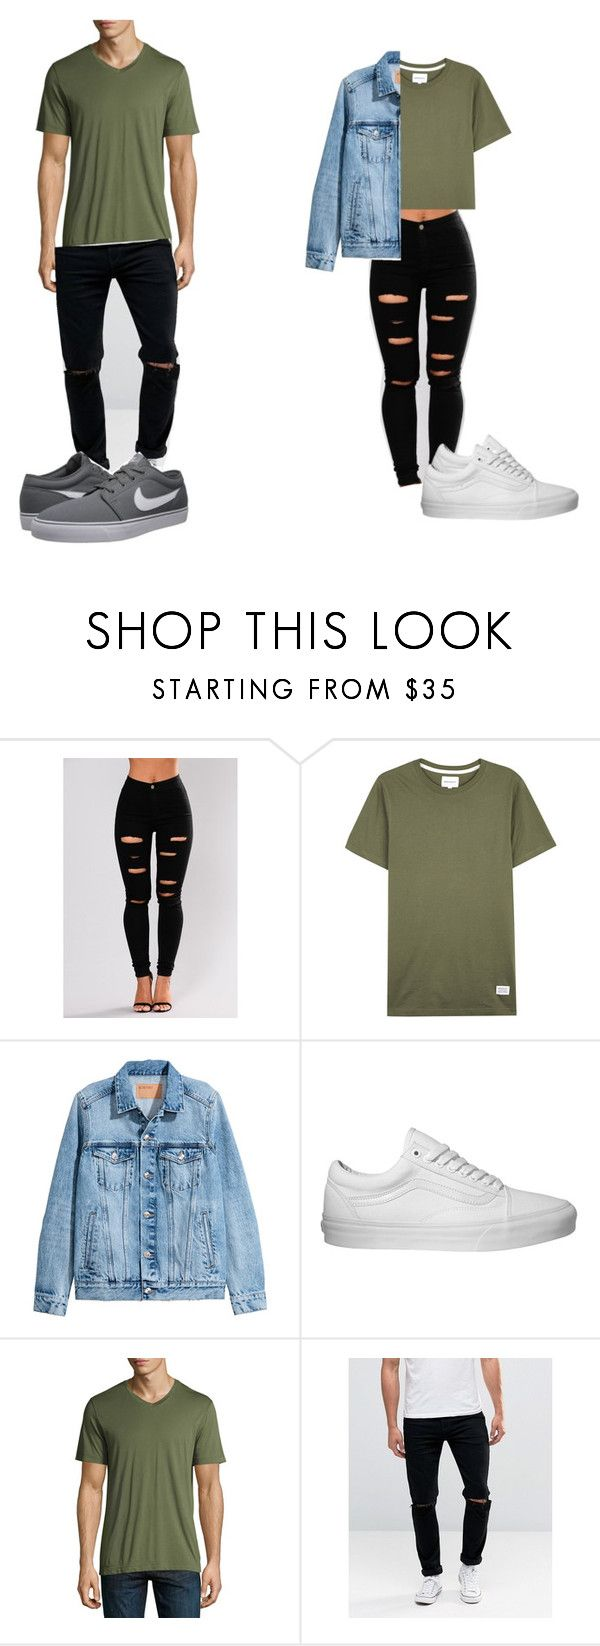 fgmsgkm by laral23 on Polyvore featuring Vans, Velvet, ASOS, Norse Projects and NIKE